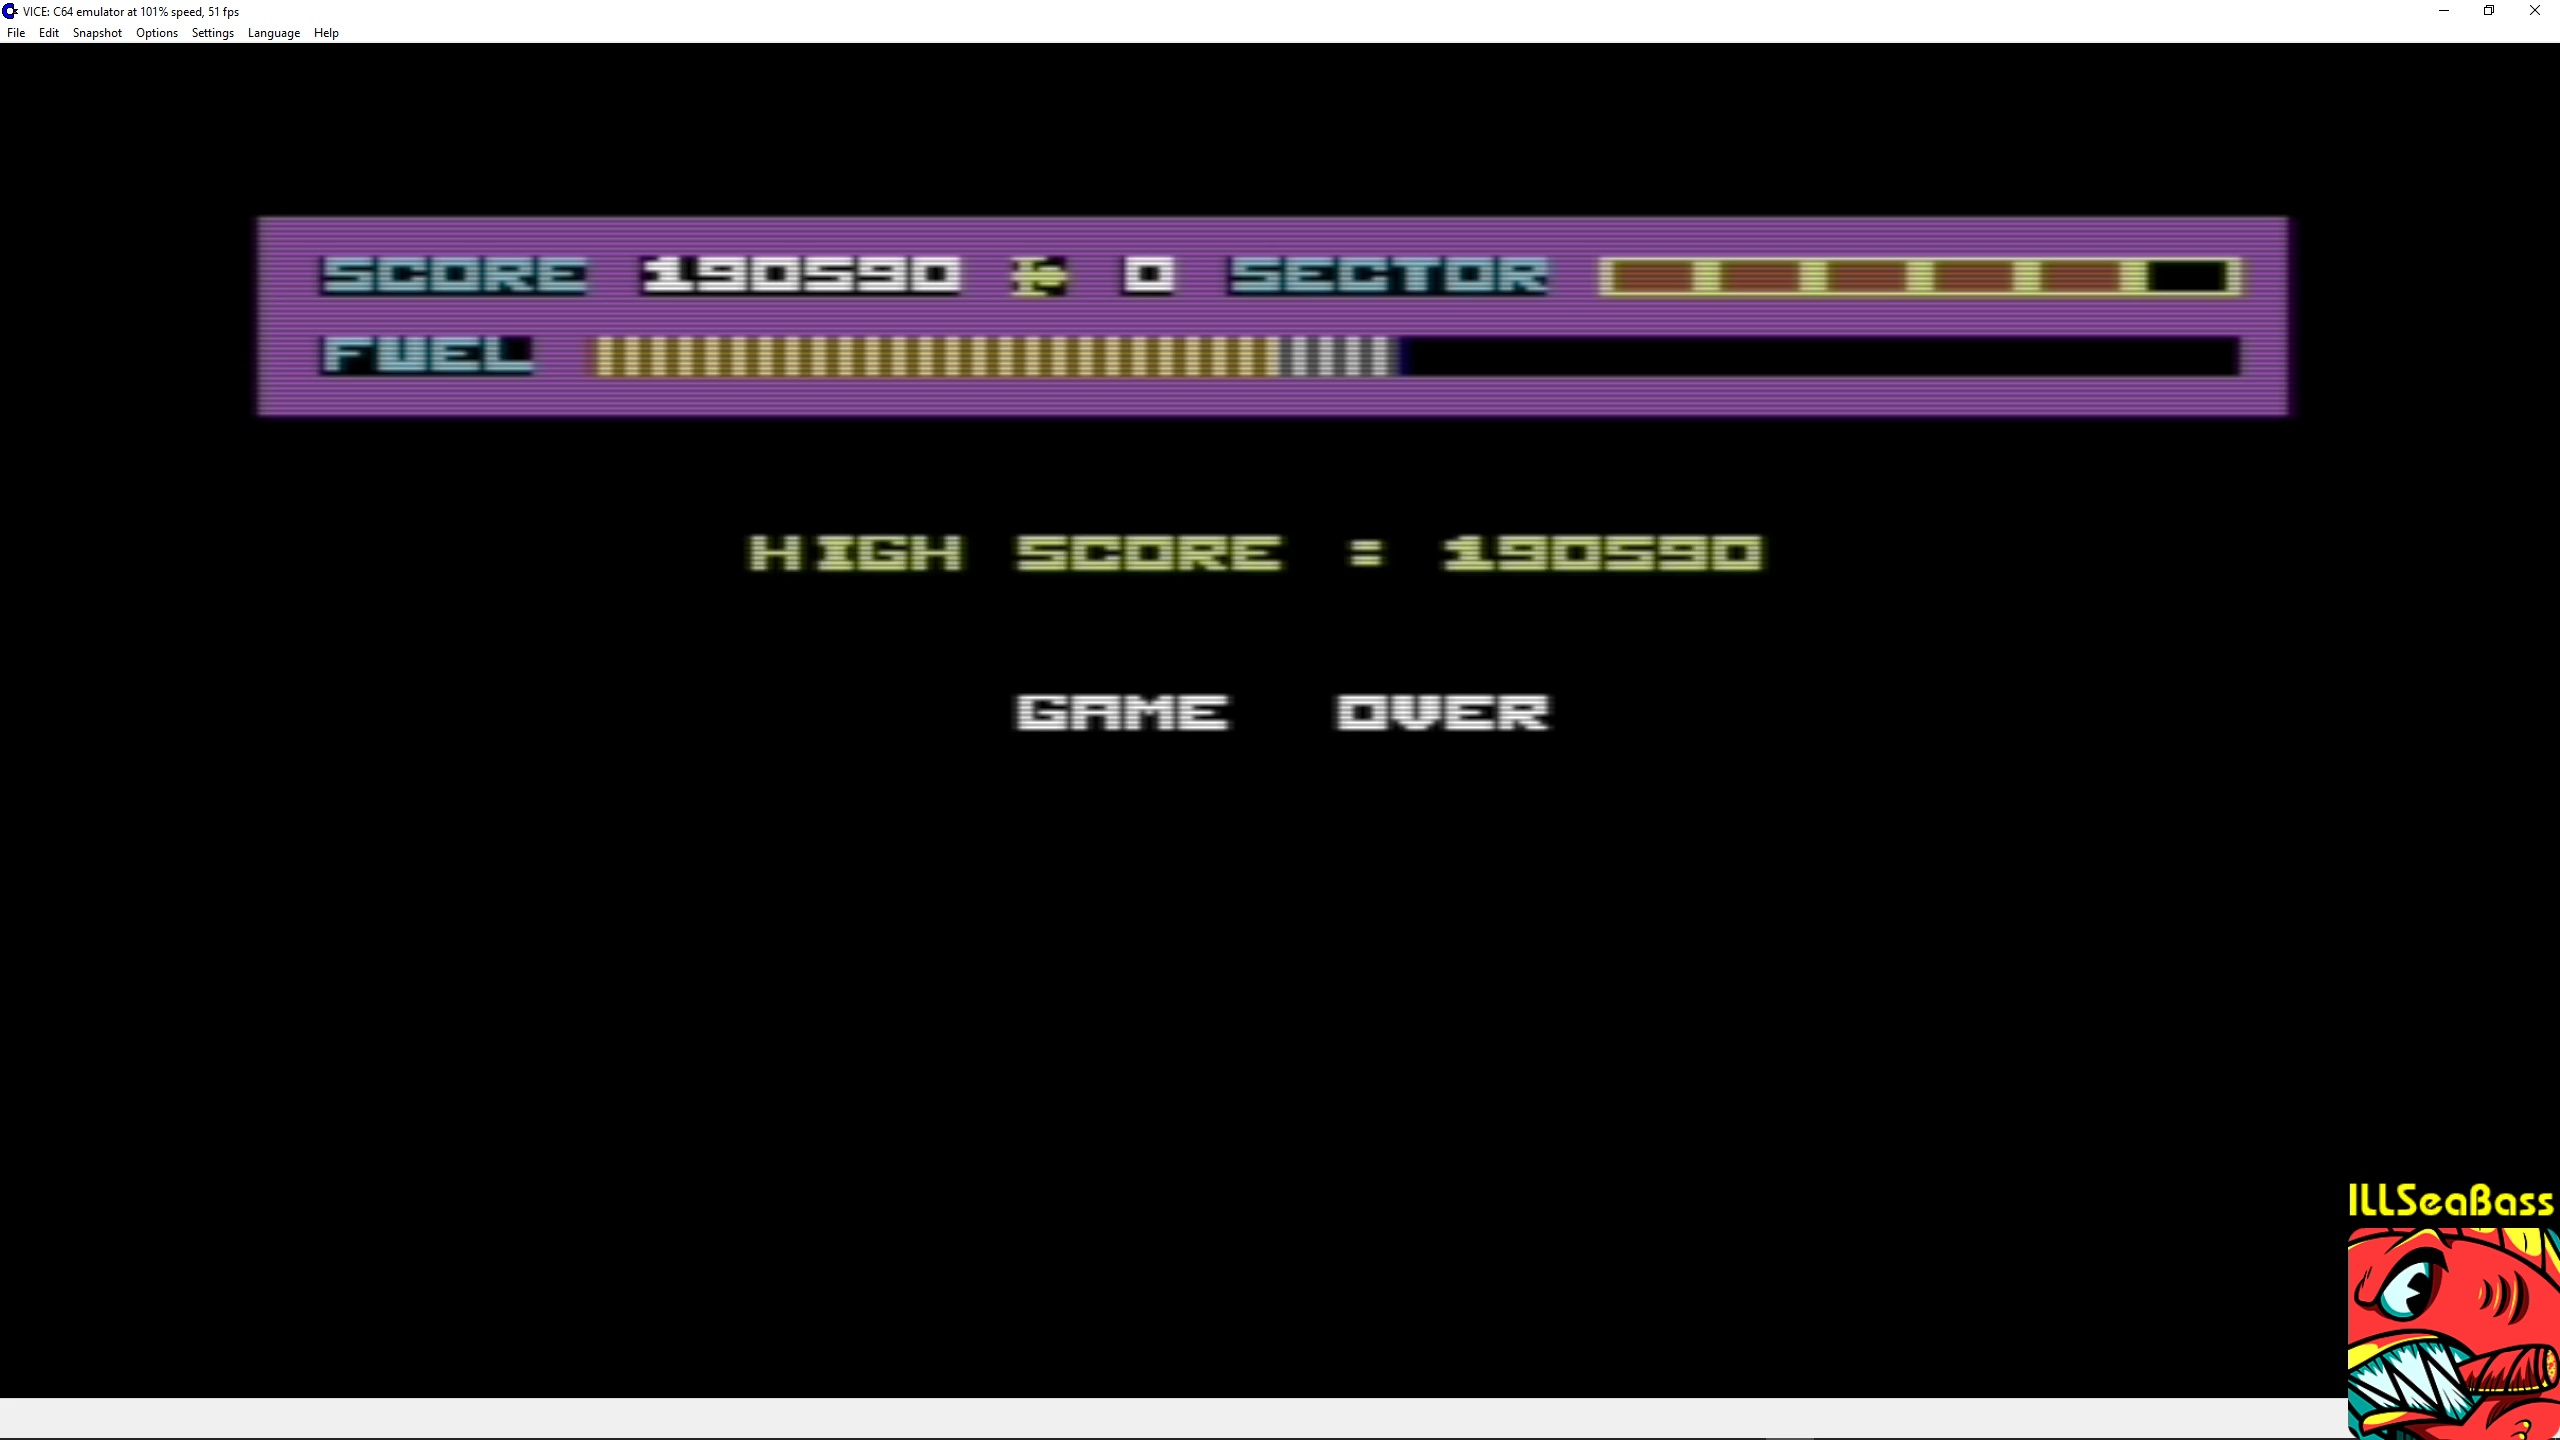 ILLSeaBass: Skramble [Anirog Software] (Commodore 64 Emulated) 190,590 points on 2018-02-25 00:31:48